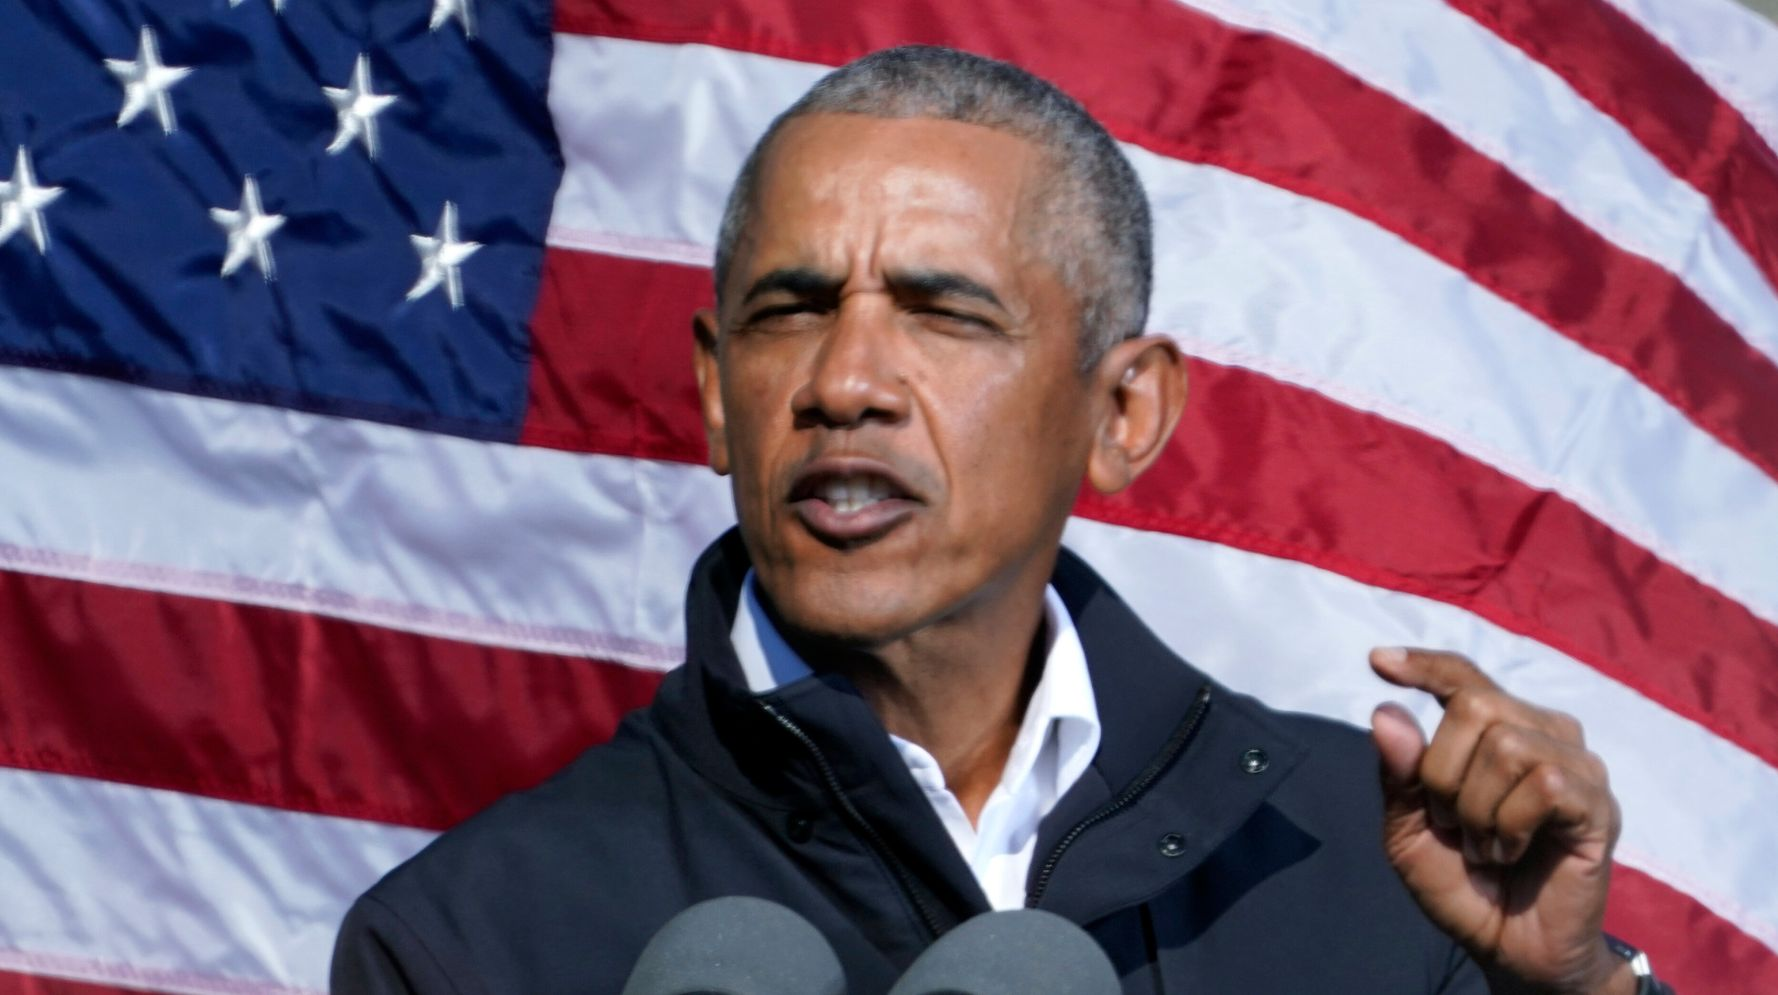 Obama Goes After Trump's Pandemic Rallies: A 'COVID-Spreader Tour'